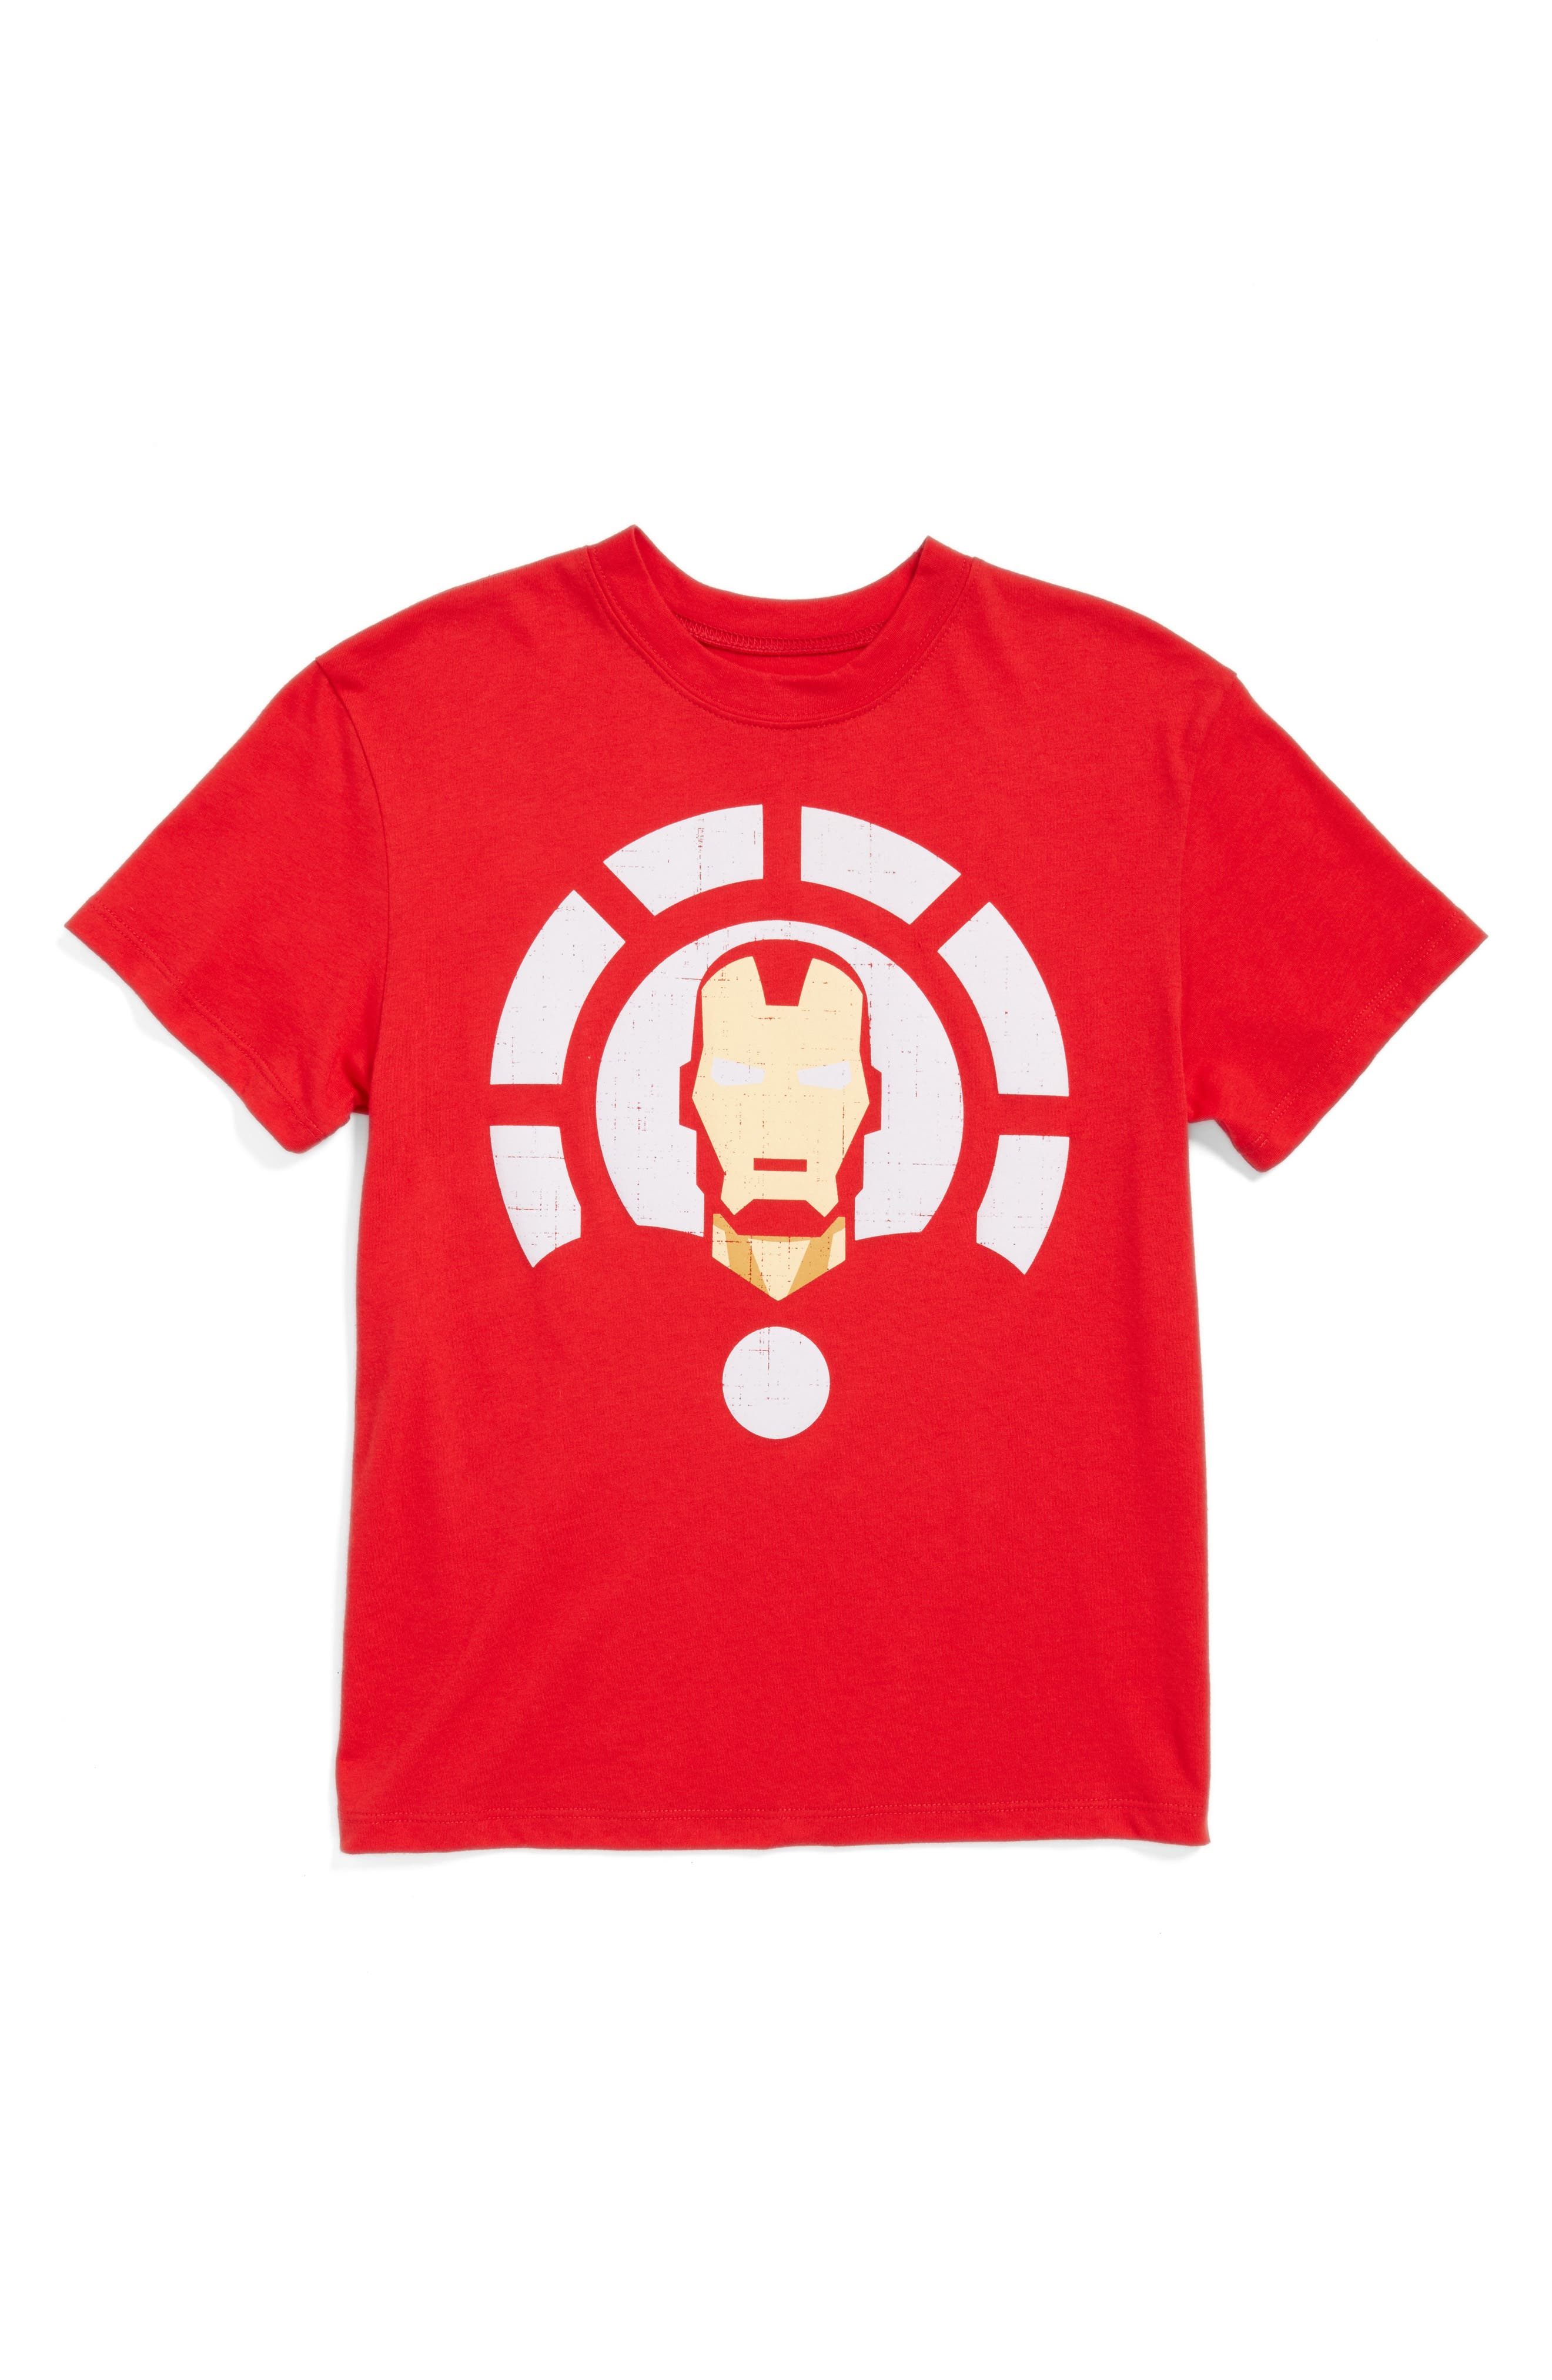 Alternate Image 1 Selected - Mighty Fine Iron Man Graphic T-Shirt (Big Boys)